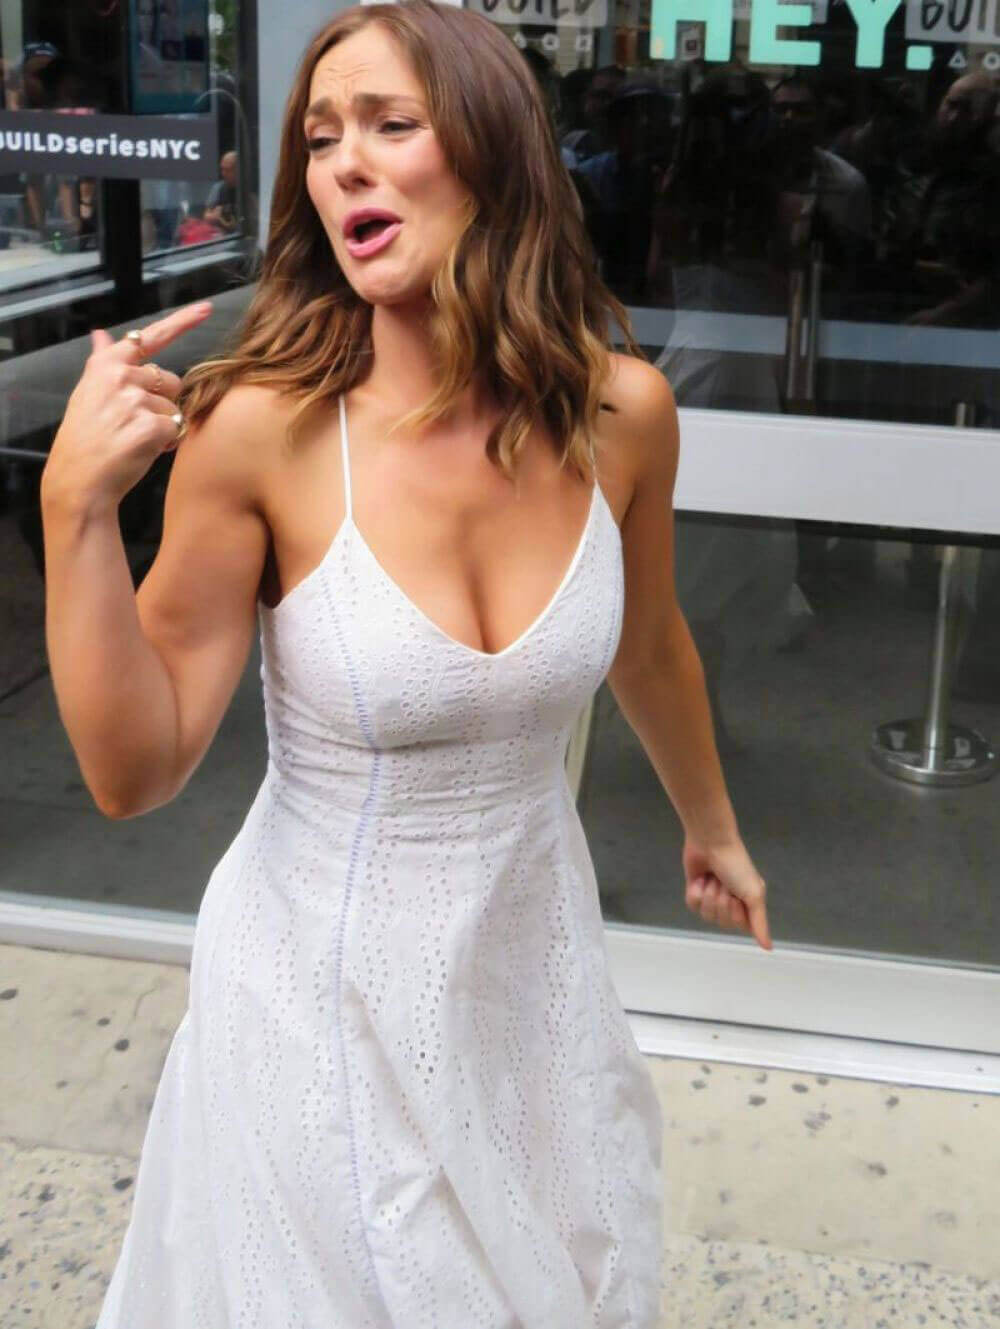 minka kelly aww